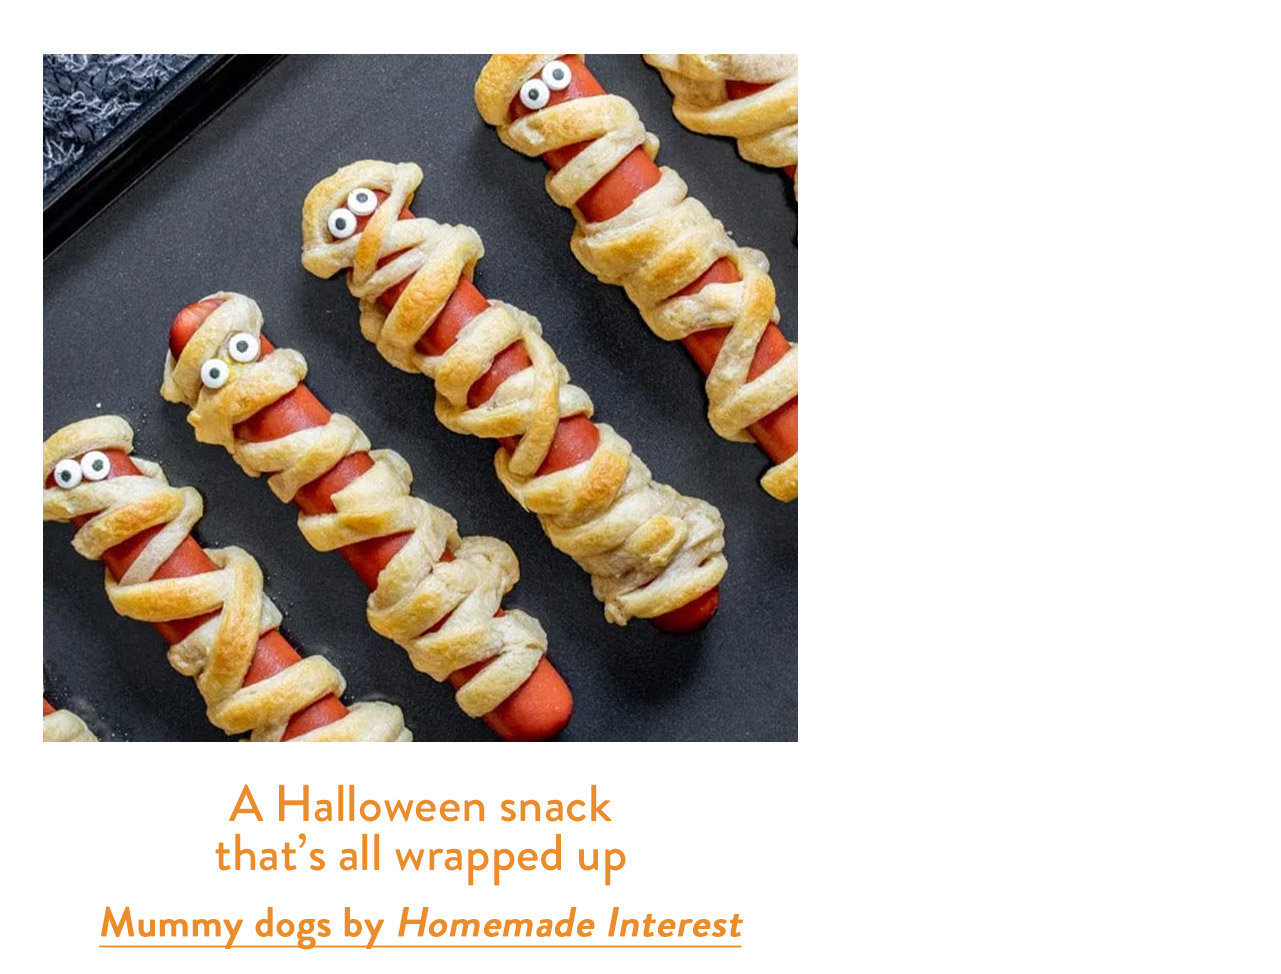 Mummy dogs by Homemade Interest